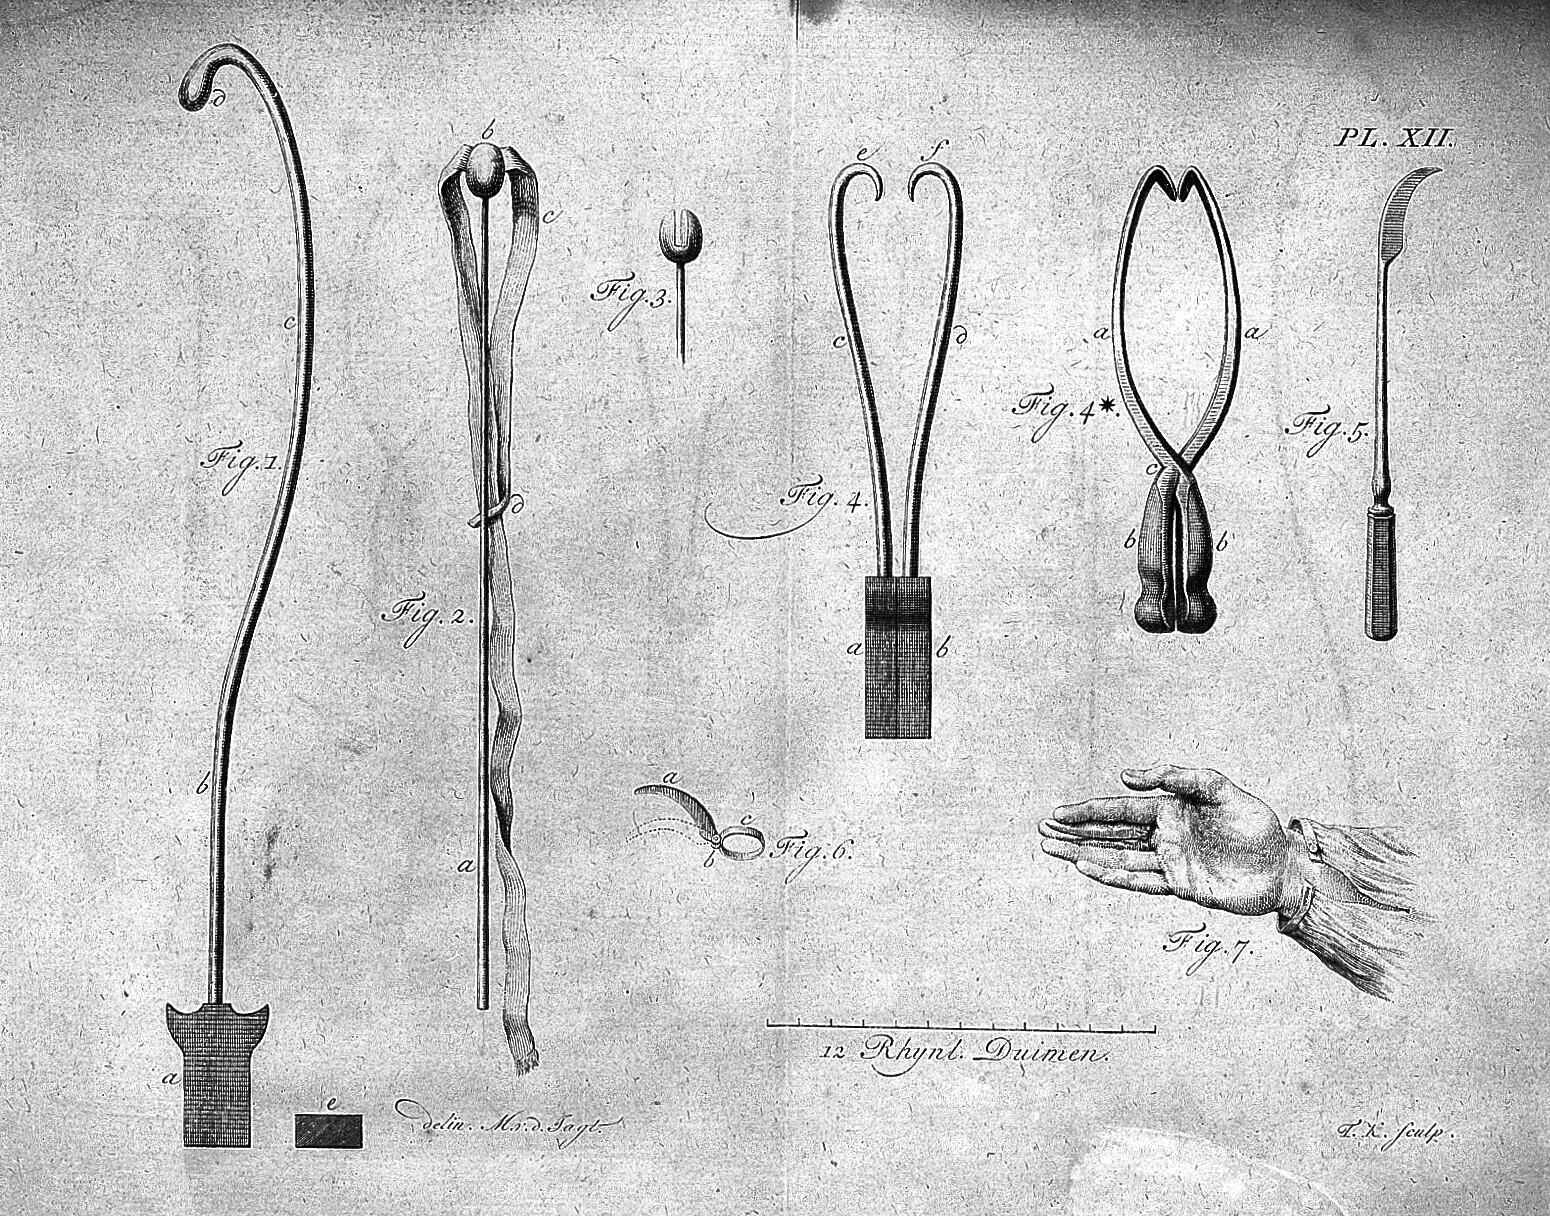 Veterinary medicine - 18th-century instruments  | Wellcome